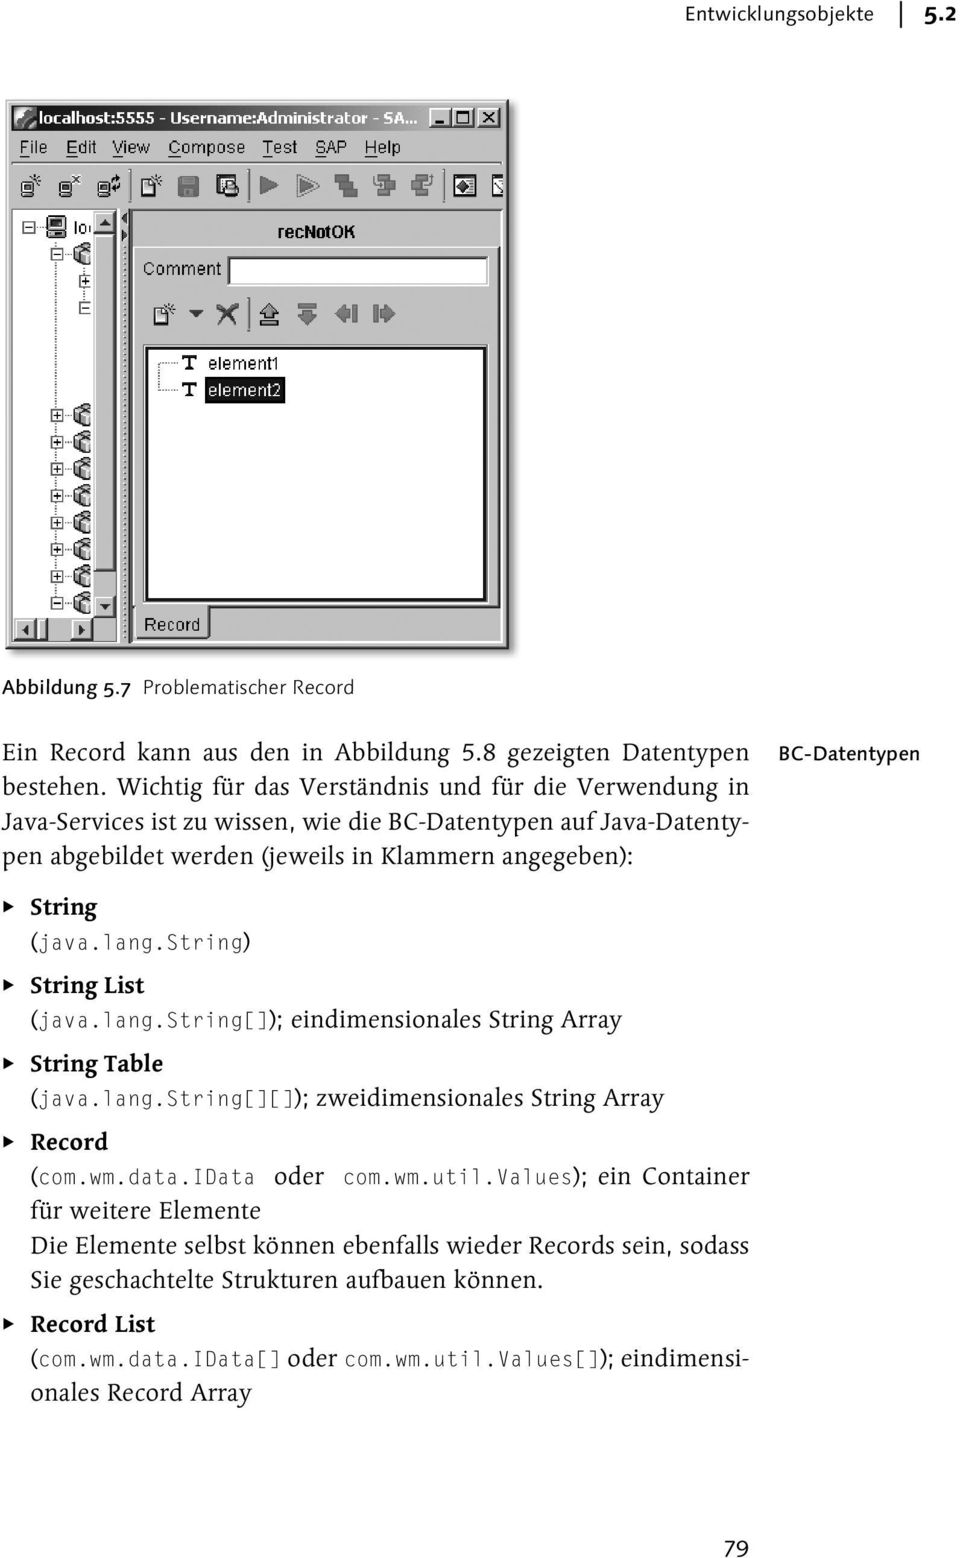 String (java.lang.string) String List (java.lang.string[]); eindimensionales String Array String Table (java.lang.string[][]); zweidimensionales String Array Record (com.wm.data.idata oder com.